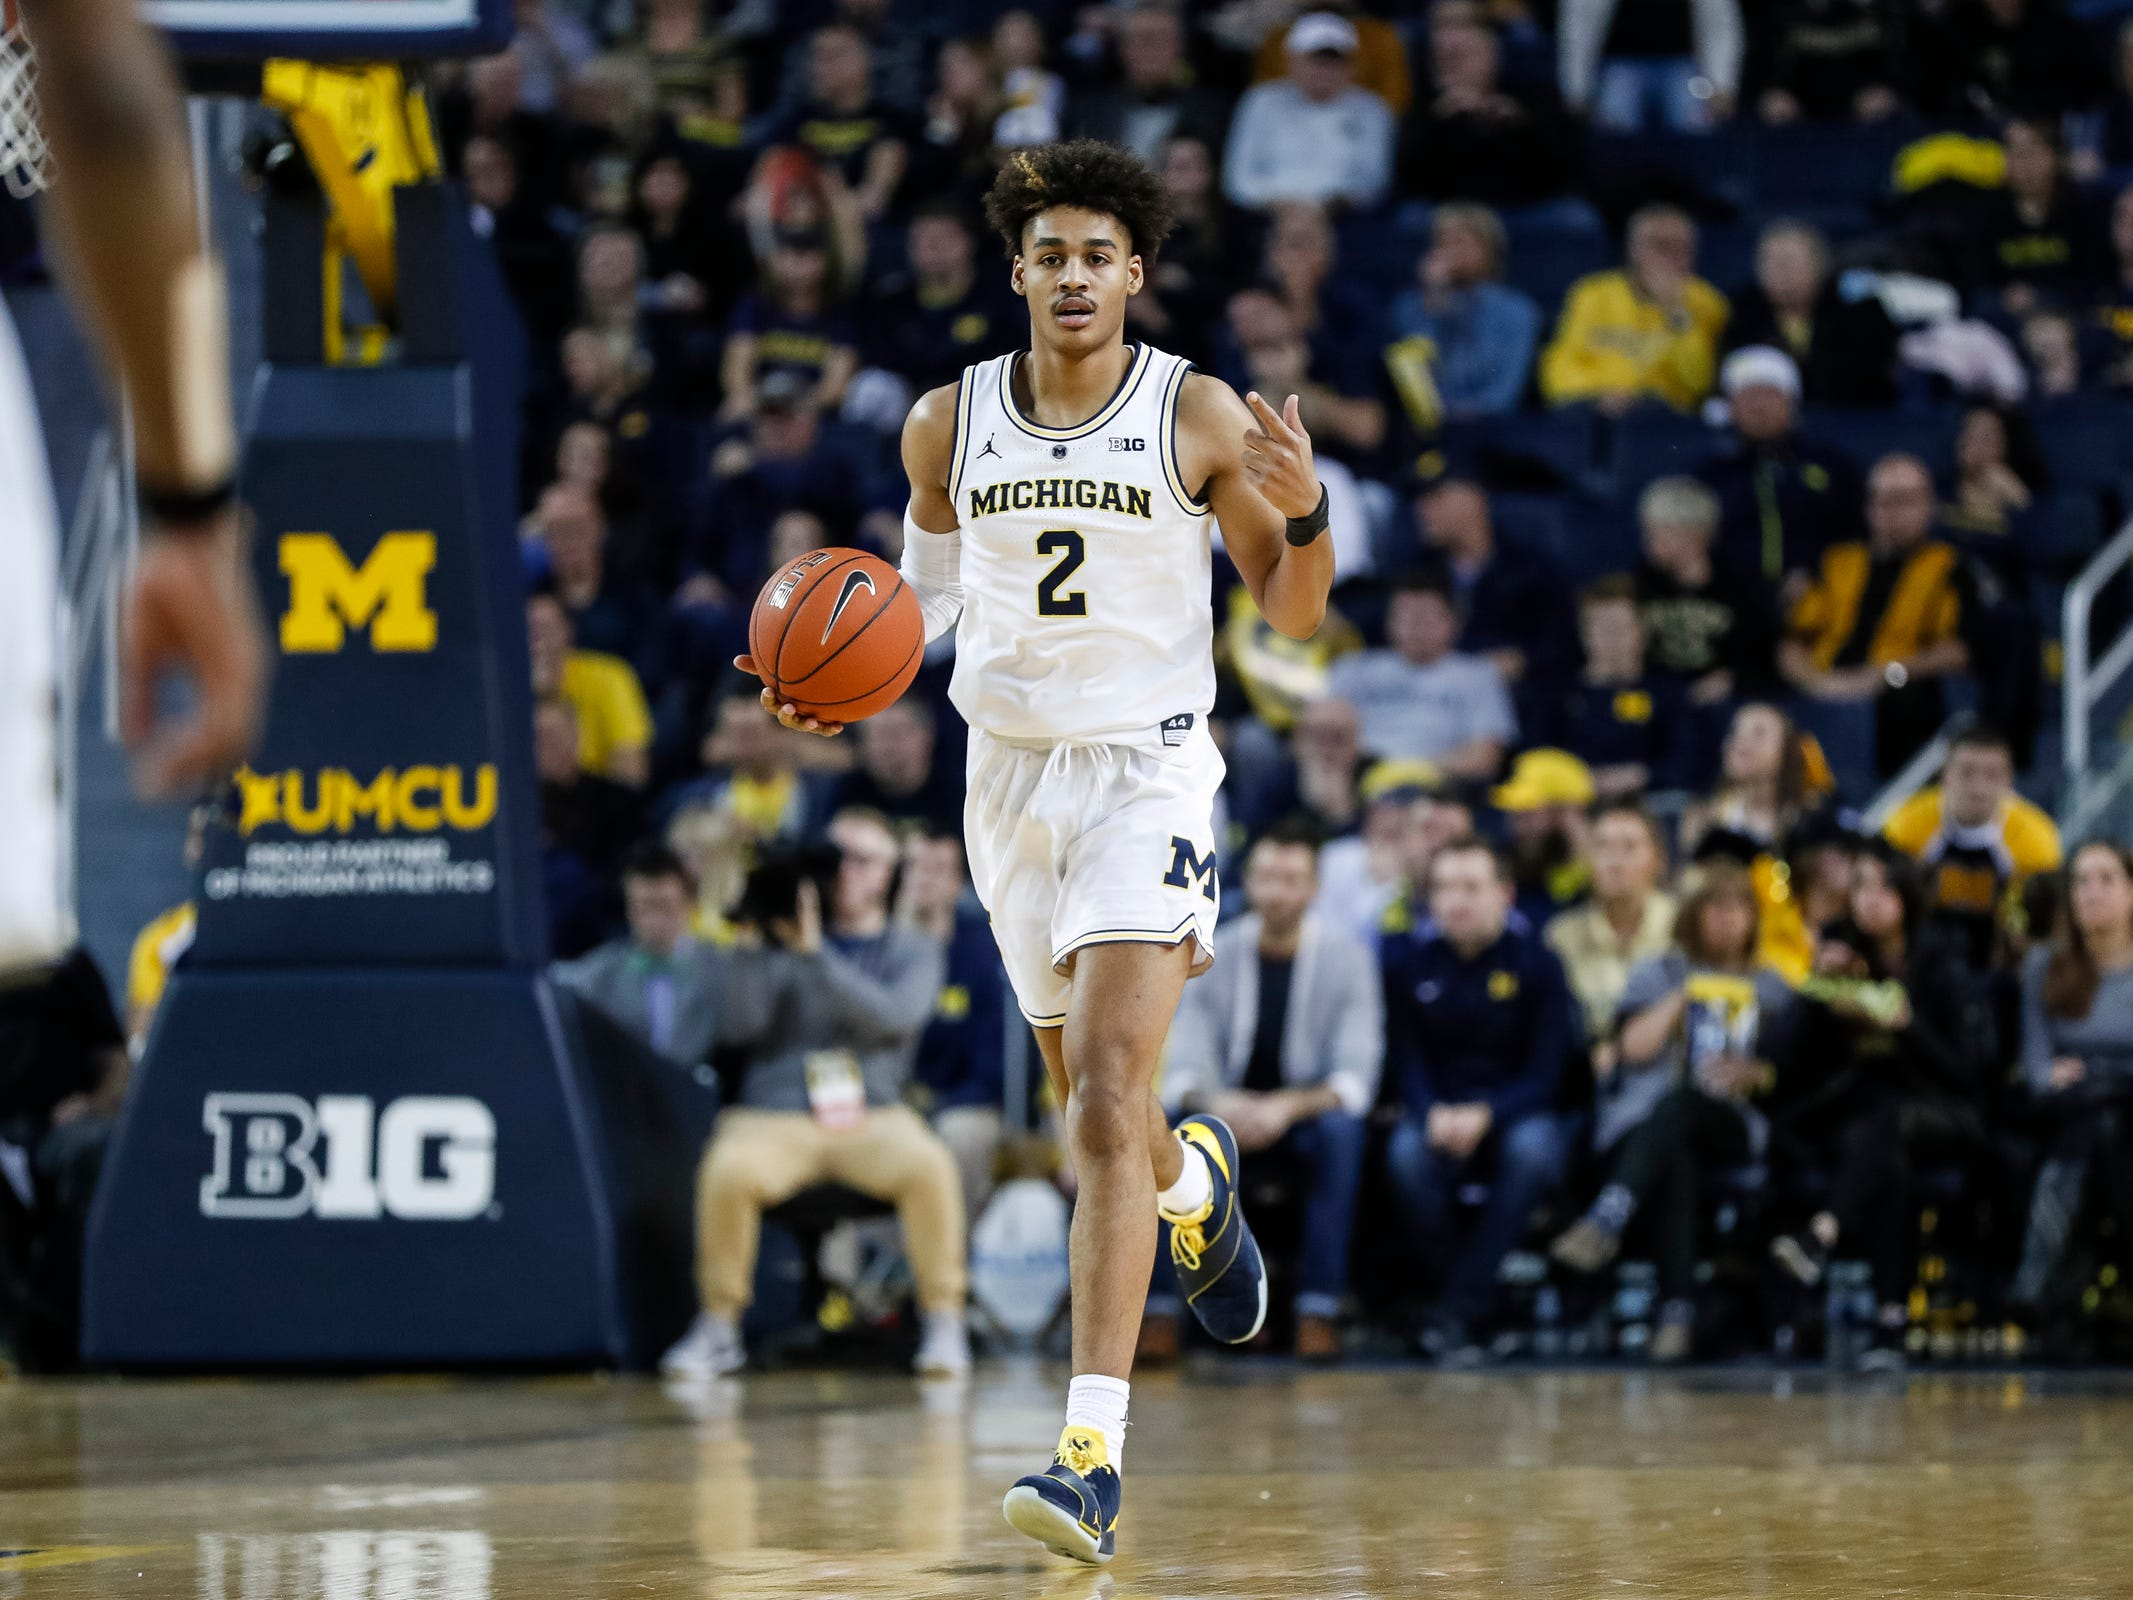 Michigan guard Jordan Poole (2) dribbles during the first half against Purdue at Crisler Center on Saturday, Dec. 1, 2018.